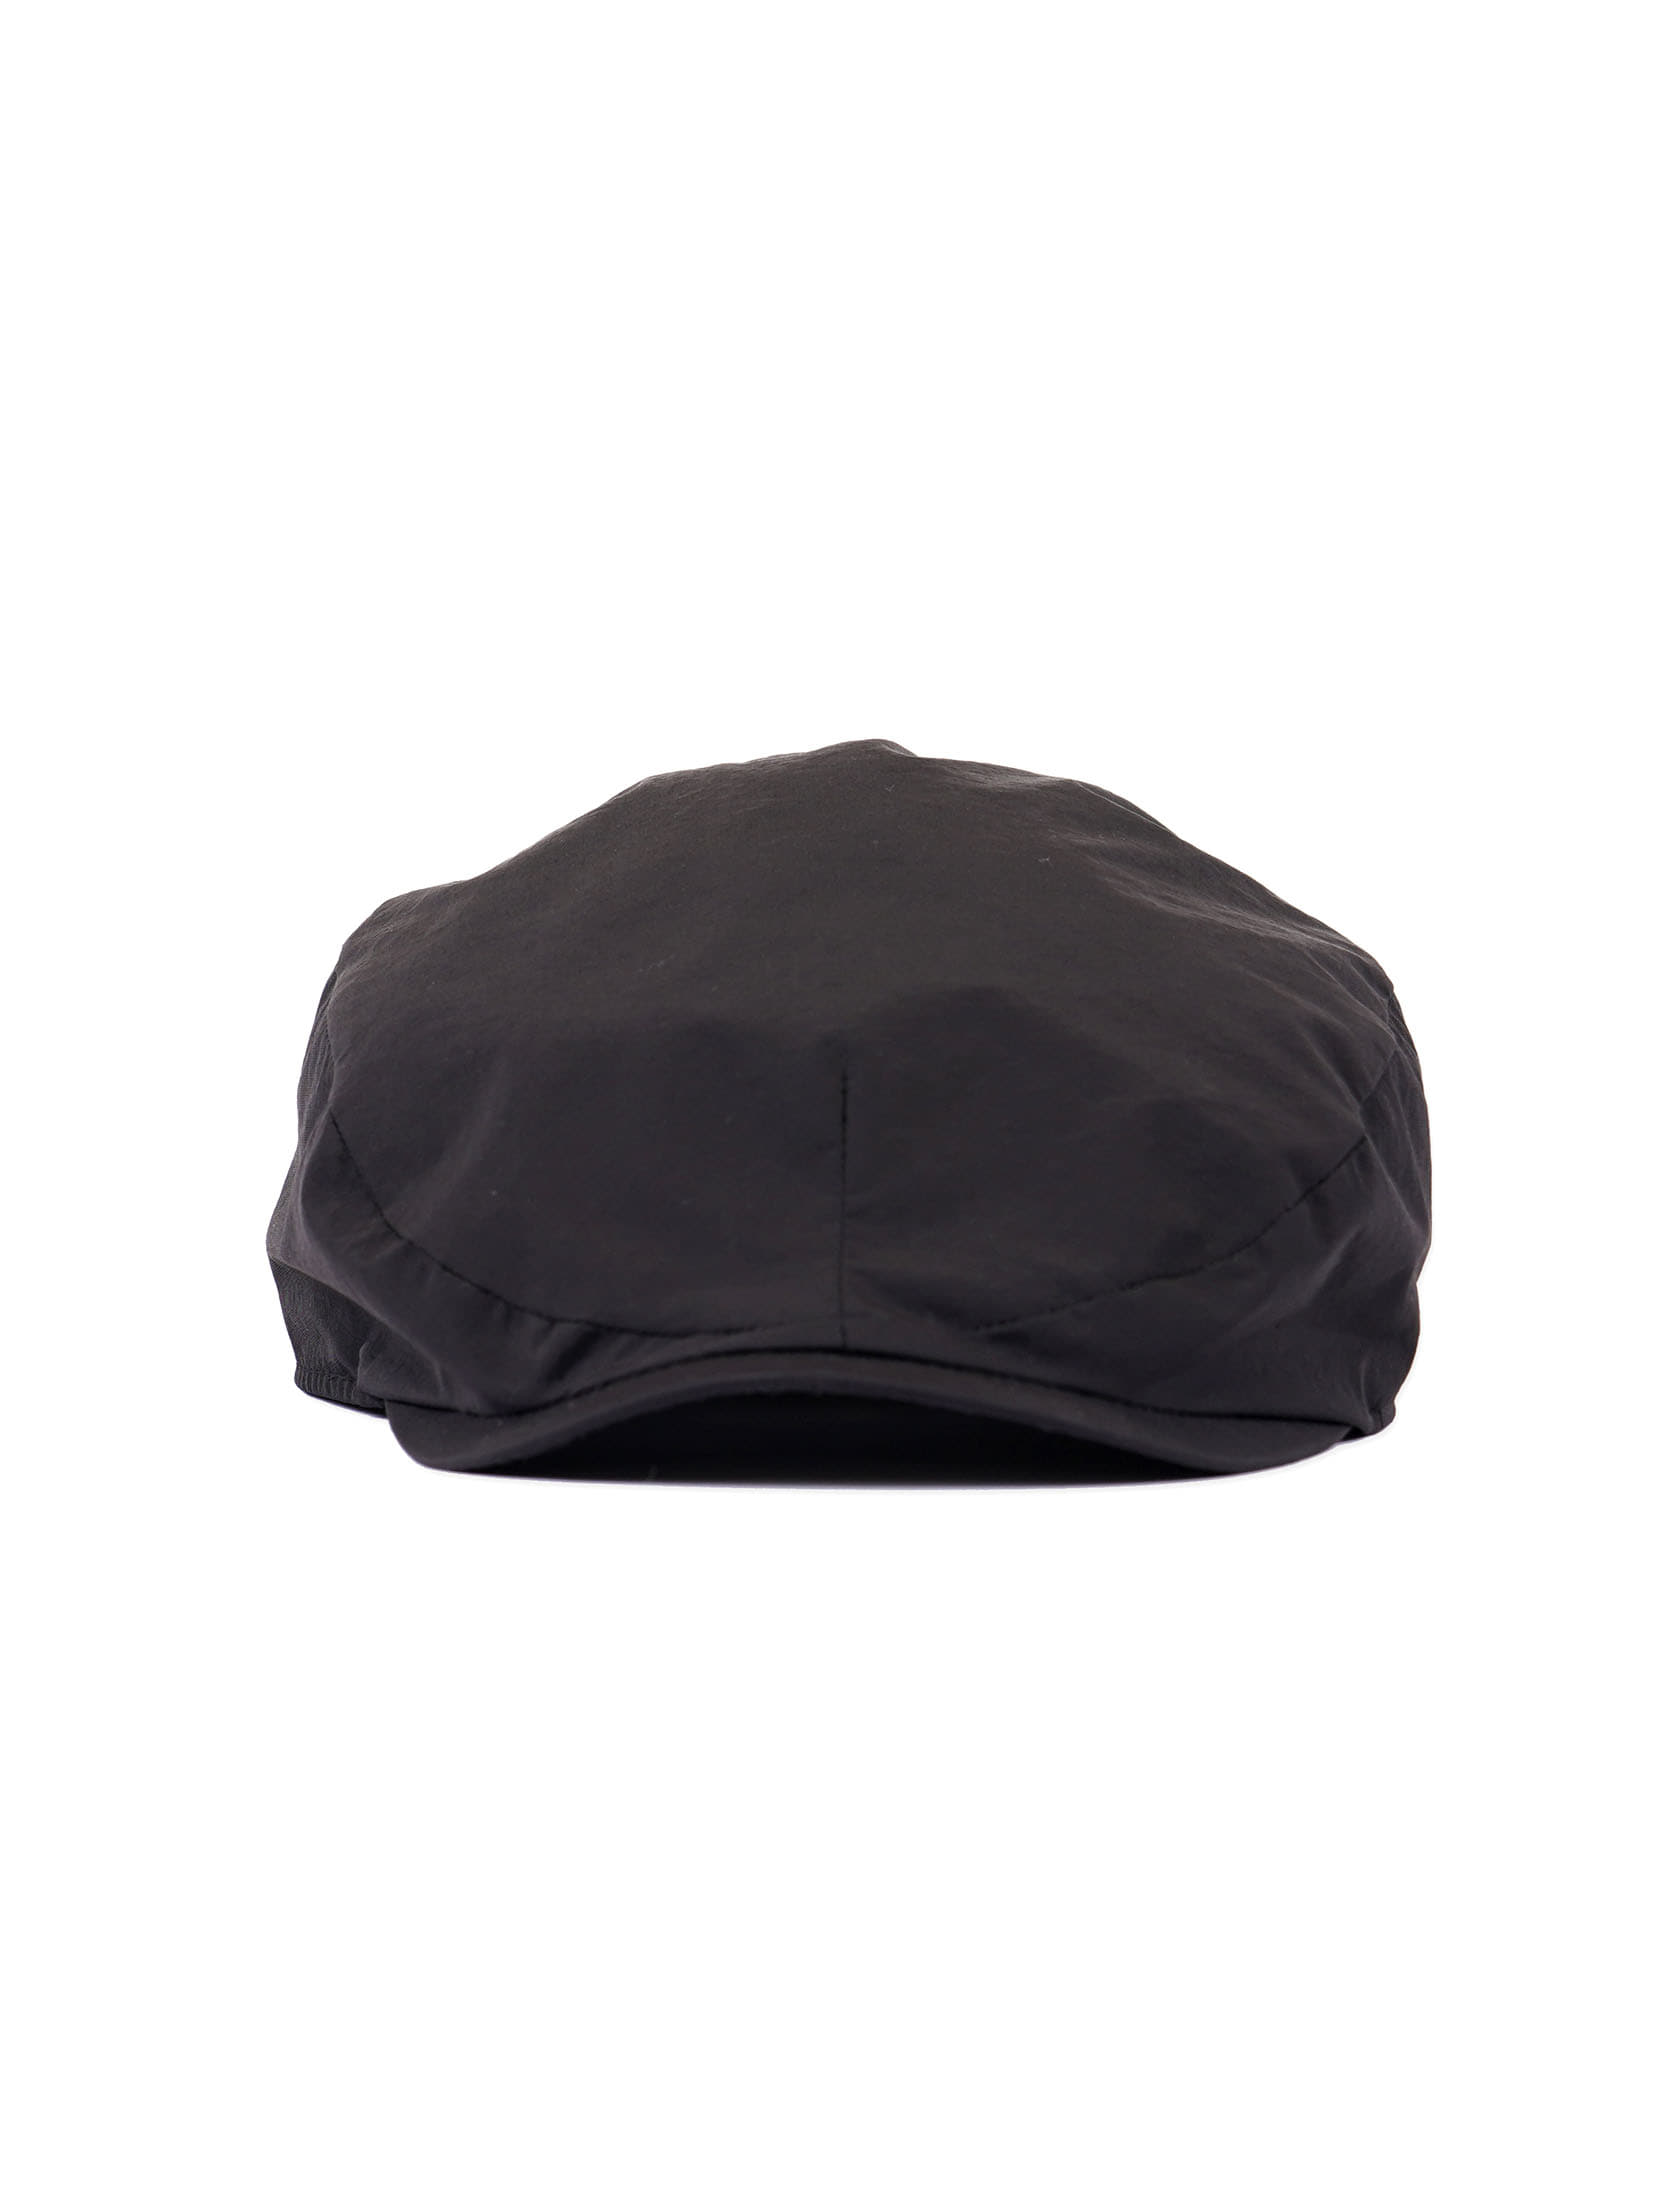 Black Cotton Nylon Hunting Cap